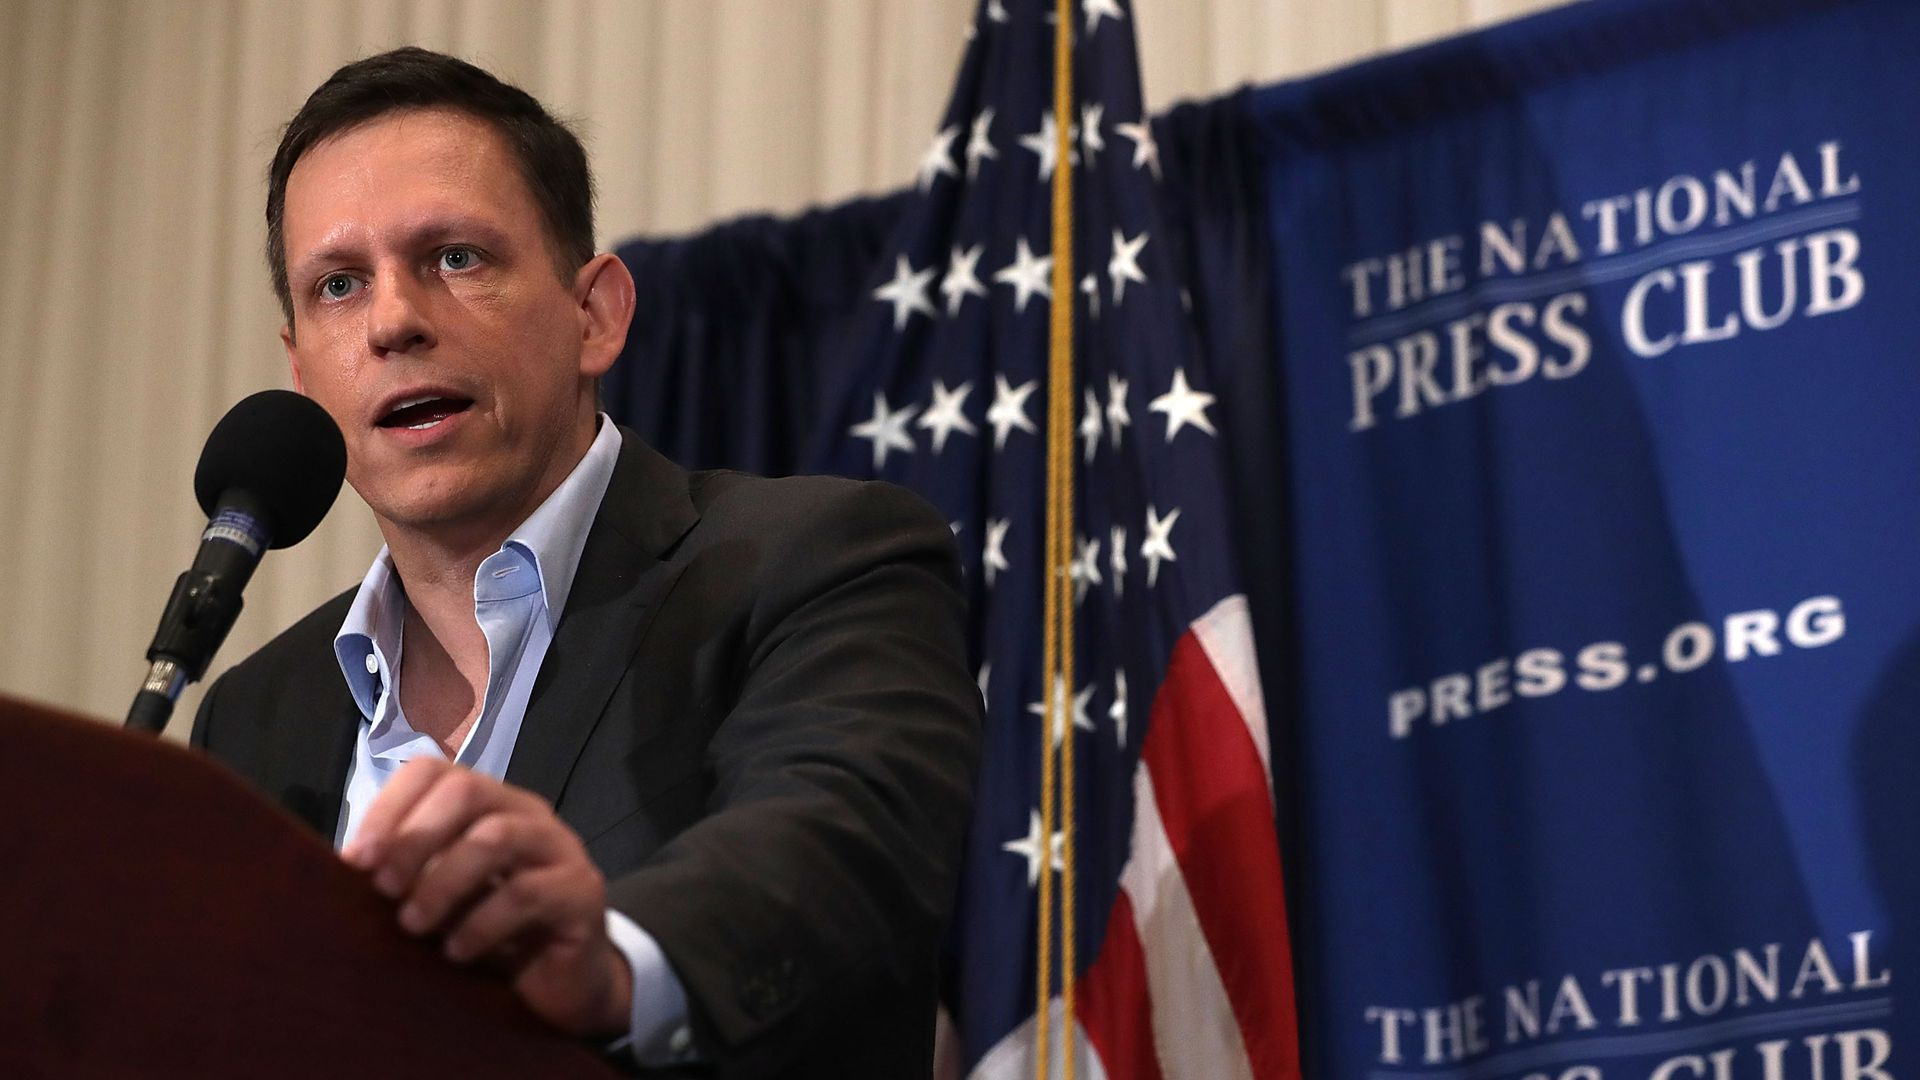 Peter Thiel speaking.